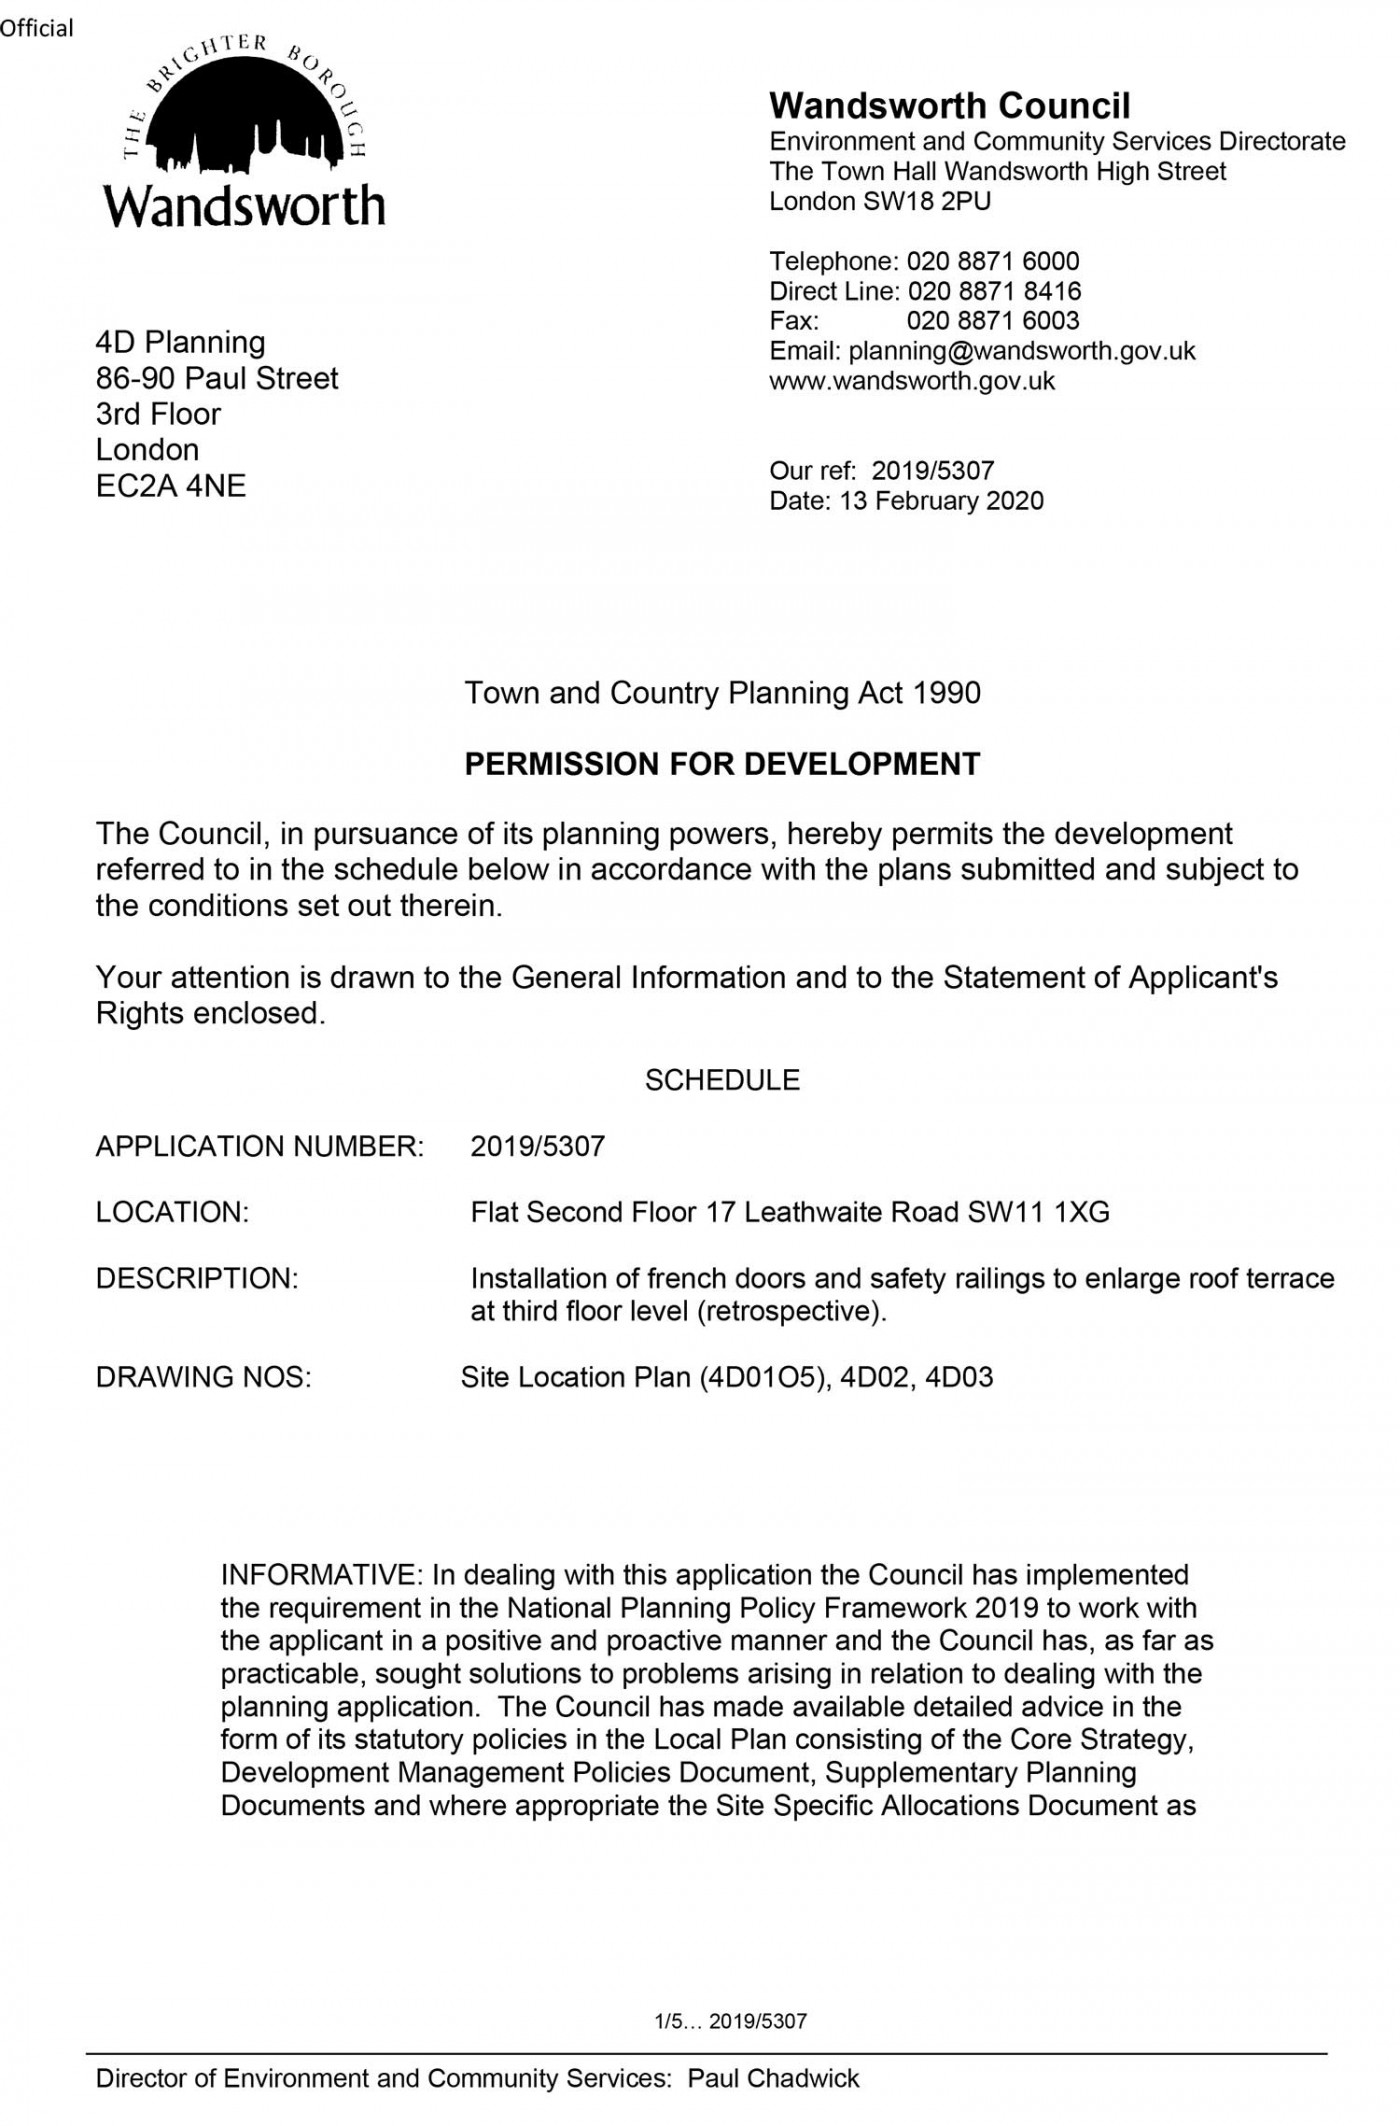 Wandsworth Council Decision Notice Planning Permission Granted